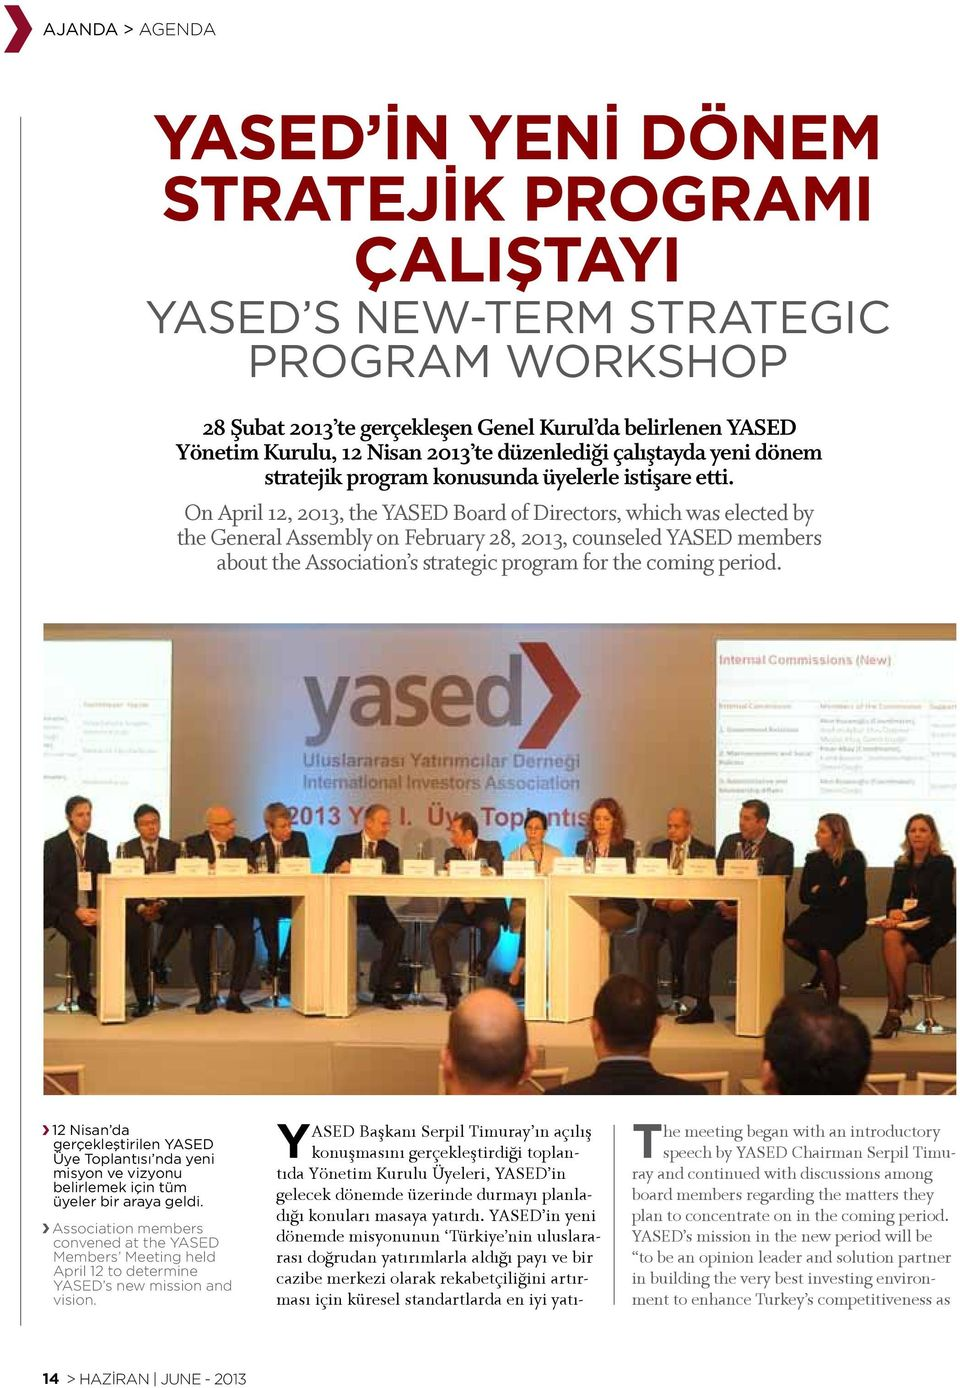 On April 12, 2013, the YASED Board of Directors, which was elected by the General Assembly on February 28, 2013, counseled YASED members about the Association s strategic program for the coming